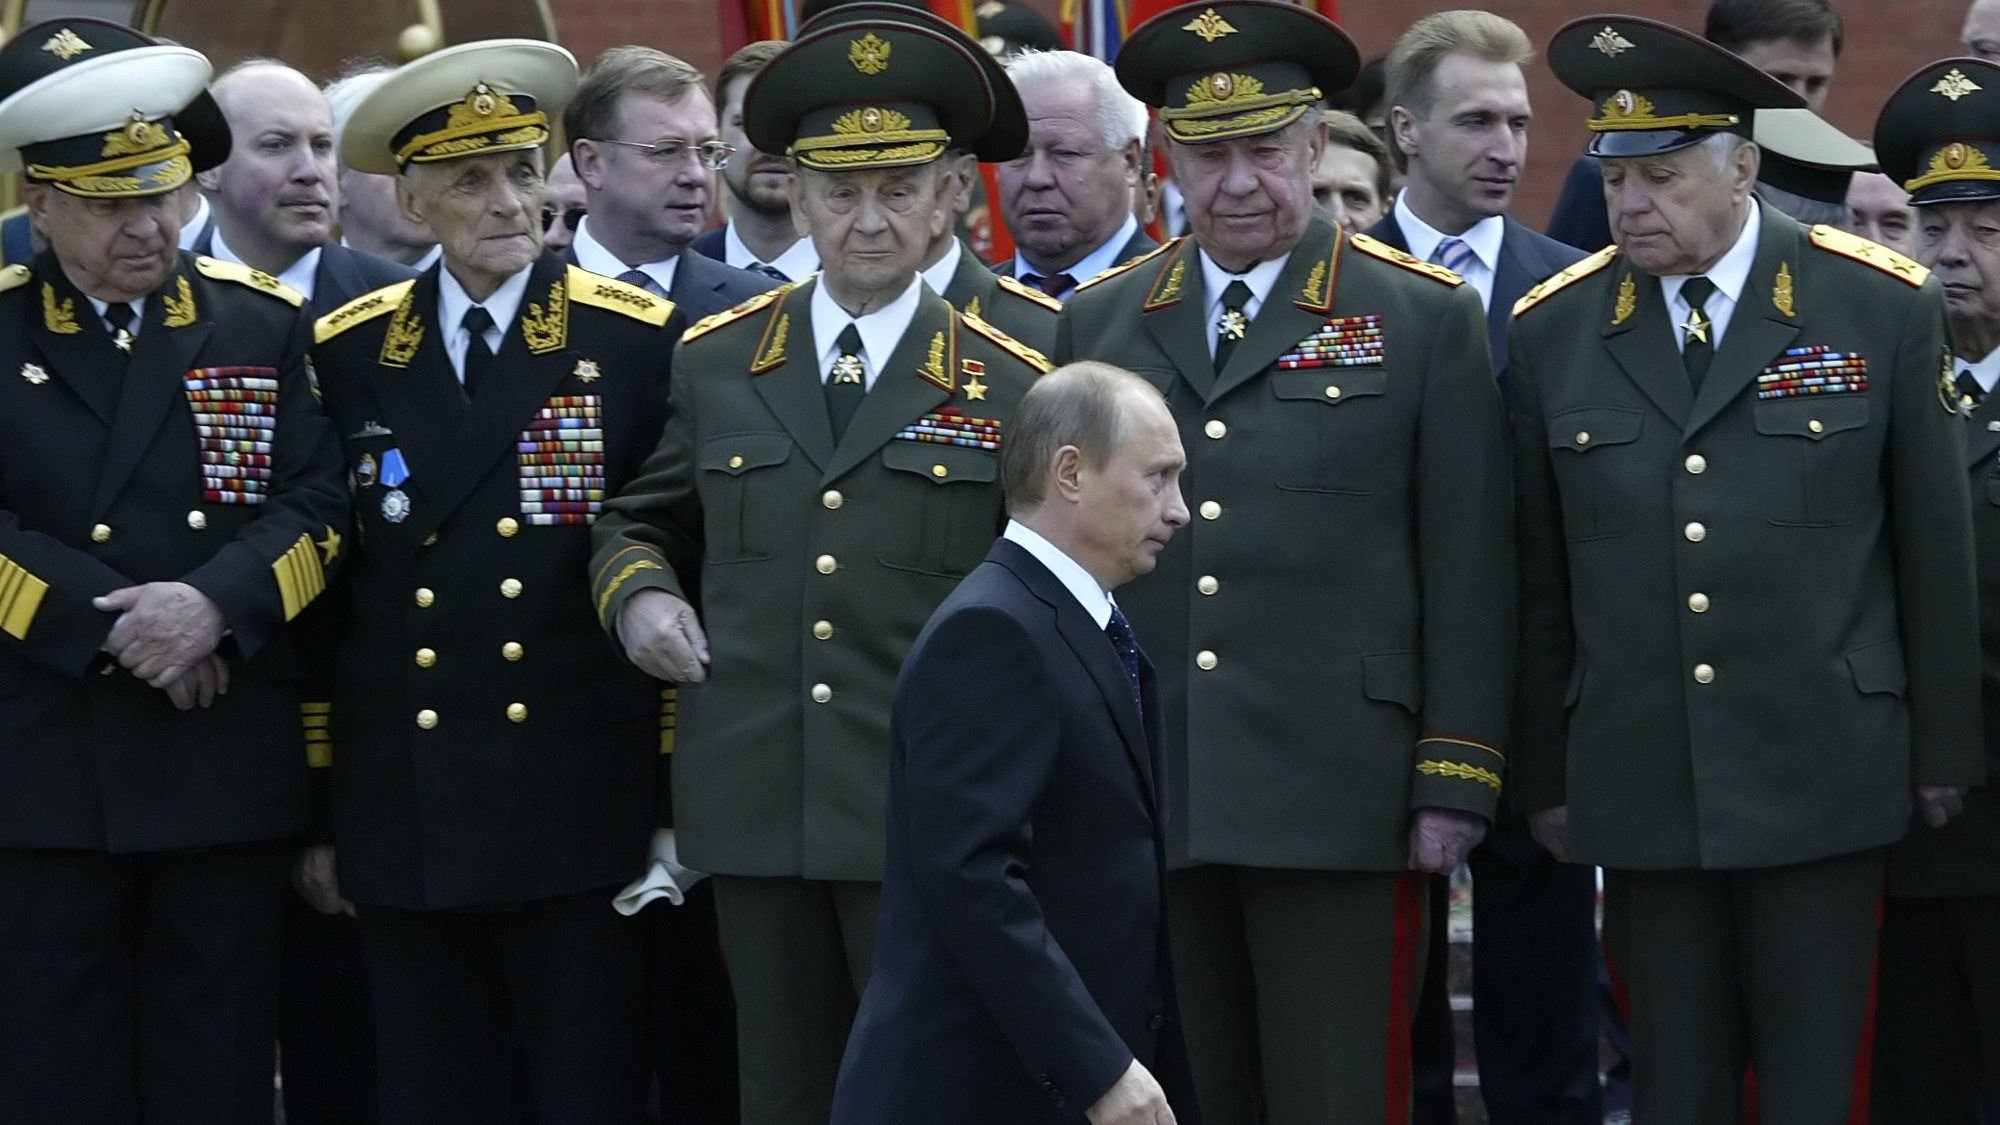 Russian President Vladimir Putin attends a wreath laying ceremony at Russia's Tomb of the Unknown Soldier to mark the upcoming Victory Day, in Moscow, Monday, May 8, 2006. Russia celebrates the Red Army's victory over the Nazis on May 9. (AP Photo/Misha Japaridze)